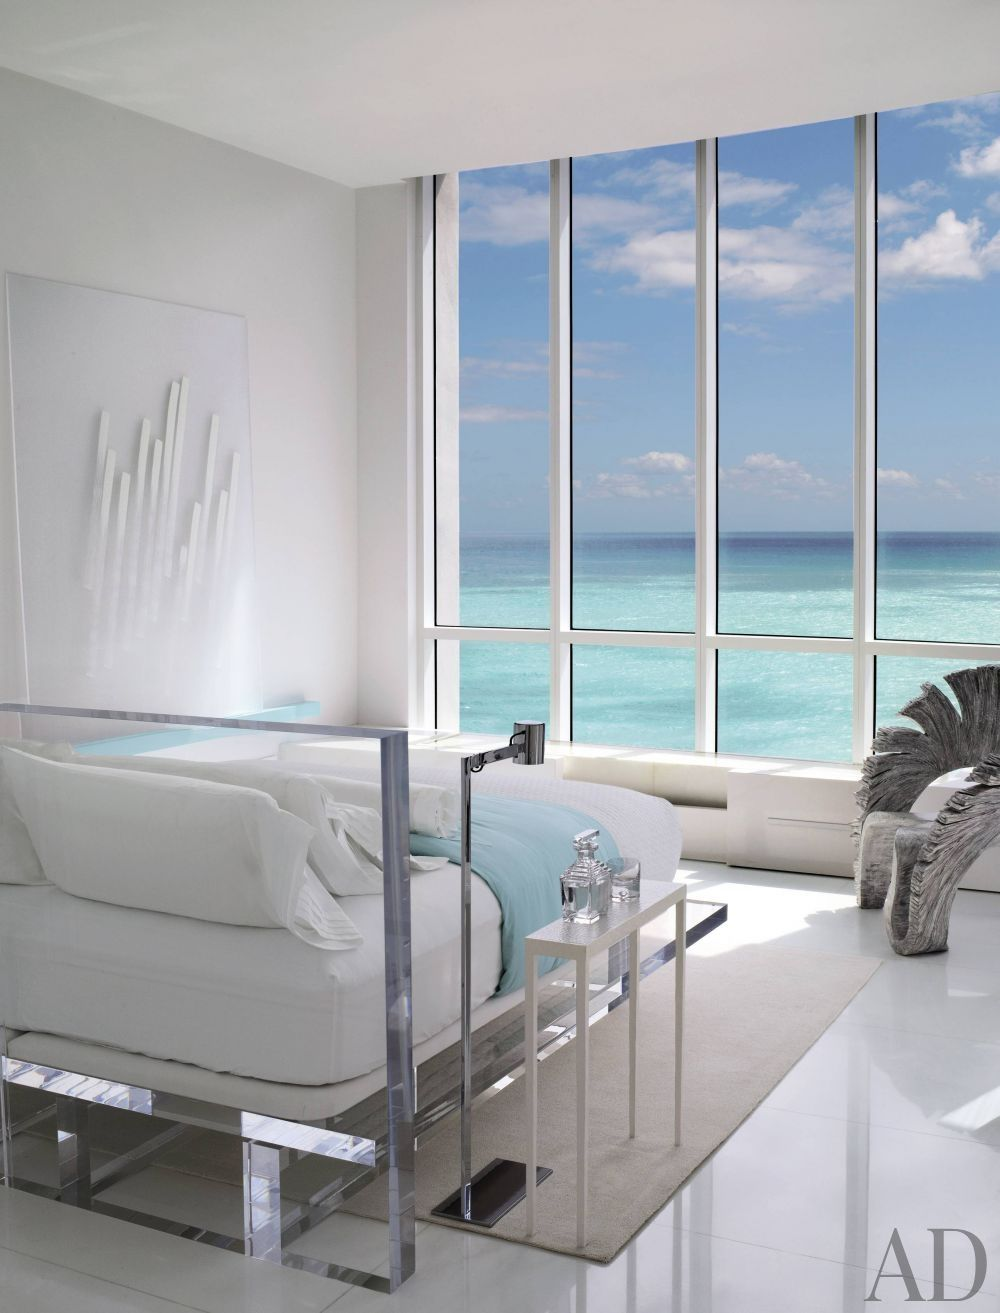 Bedrooms by the AD100 | High rise apartments, Miami beach and Miami